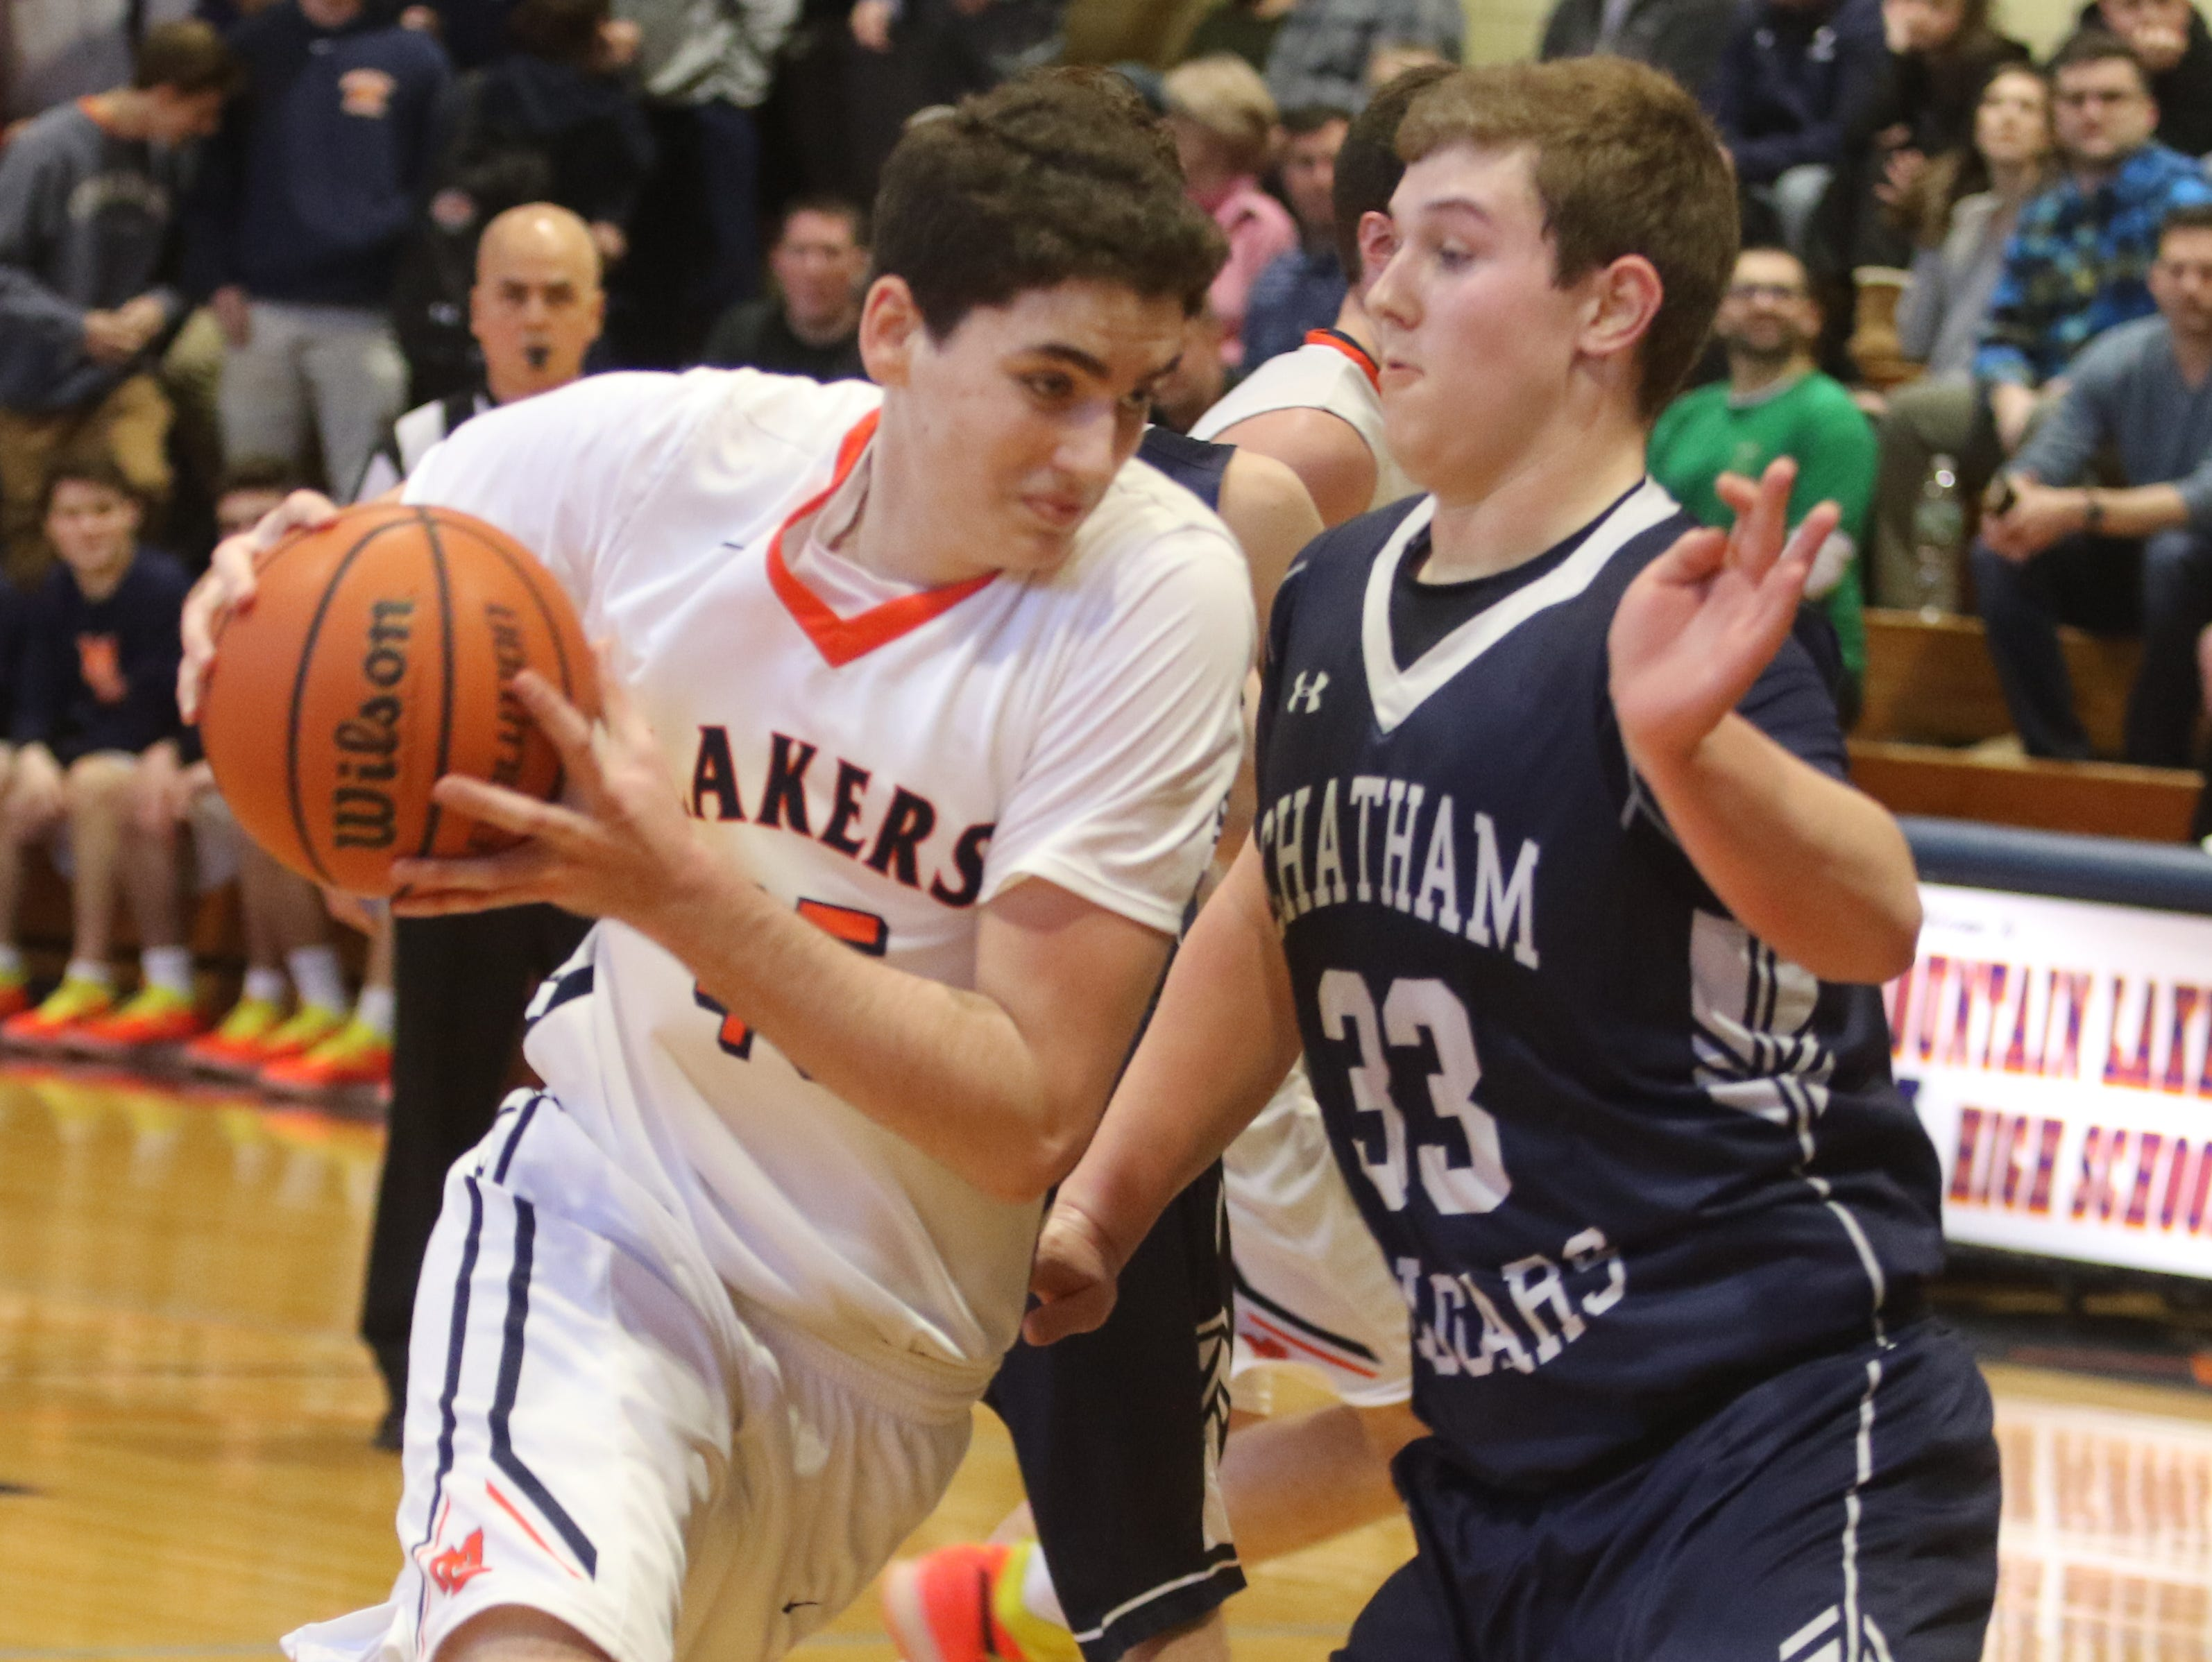 Spencer Myler of Mt. Lakes drives on Andrew Bergman of Chatham in the first half.